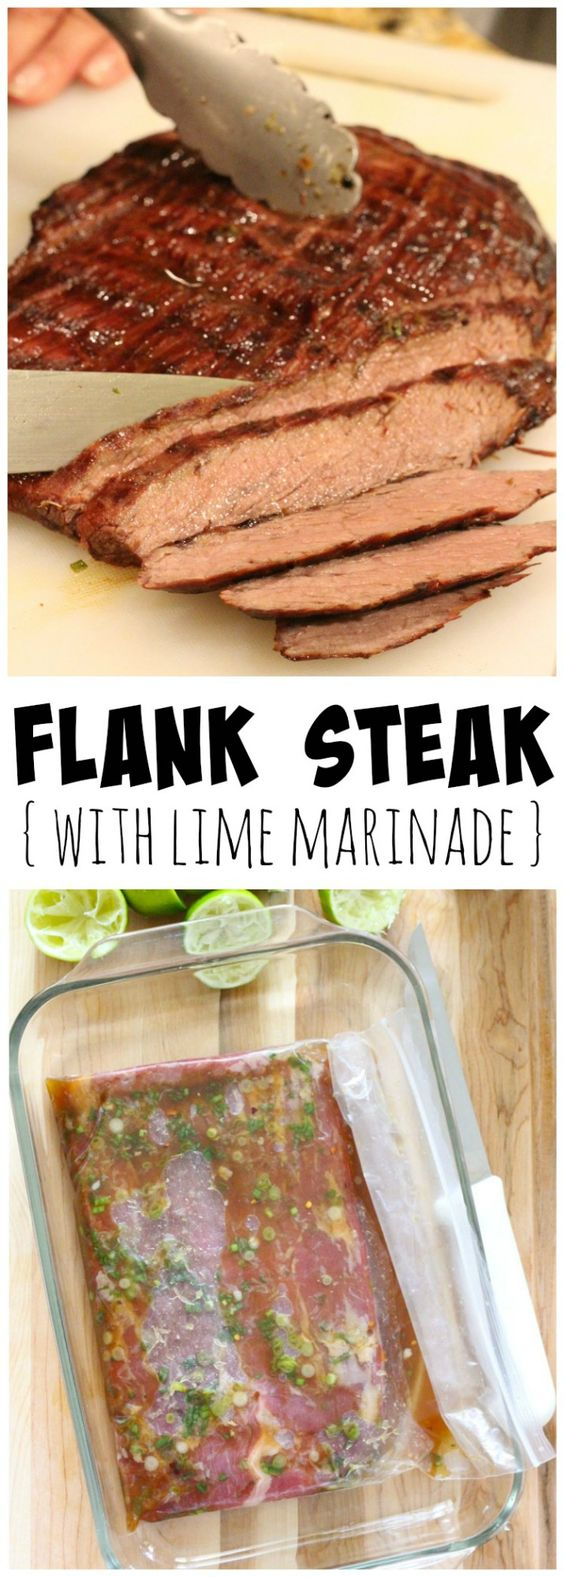 Flank Steak with Lime Marinade | Recipe | Flank Steak, Steaks and ...